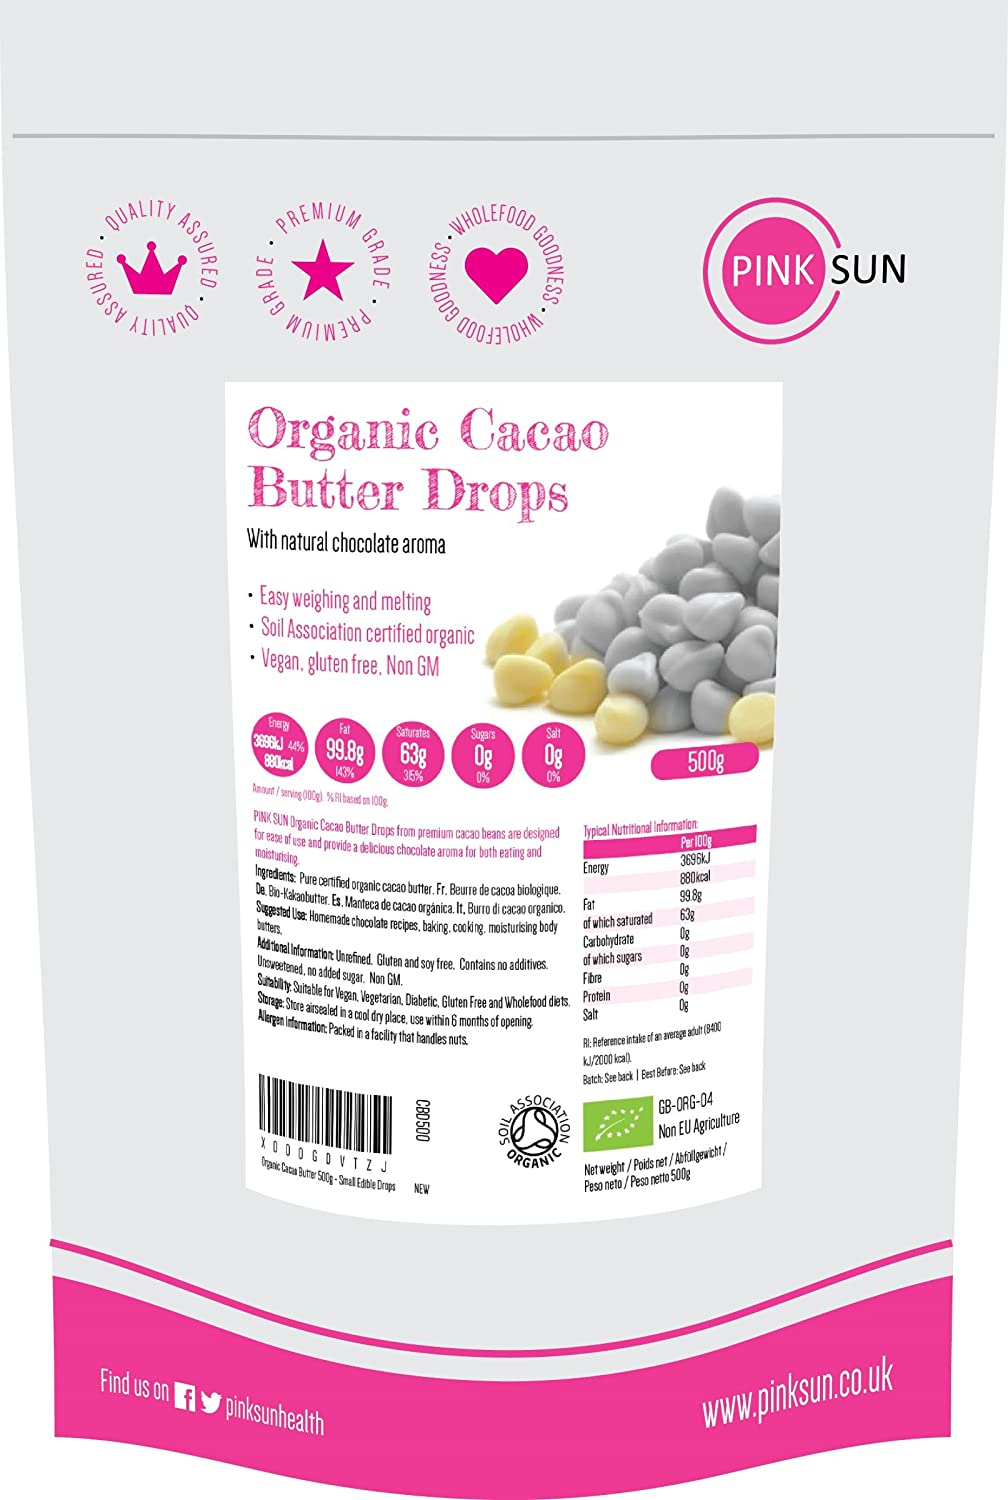 Organic Cacao Butter Drops 1kg (also available in 500g) - Small Edible Pure Unrefined Cocoa Butter Chips Wafers - Sugar Free, Gluten Free, Dairy Free, Soy Free, Food Grade Buttons, Suitable for Vegan and Vegetarians Bulk Buy 1000g PINK SUN PINK SUN Ltd